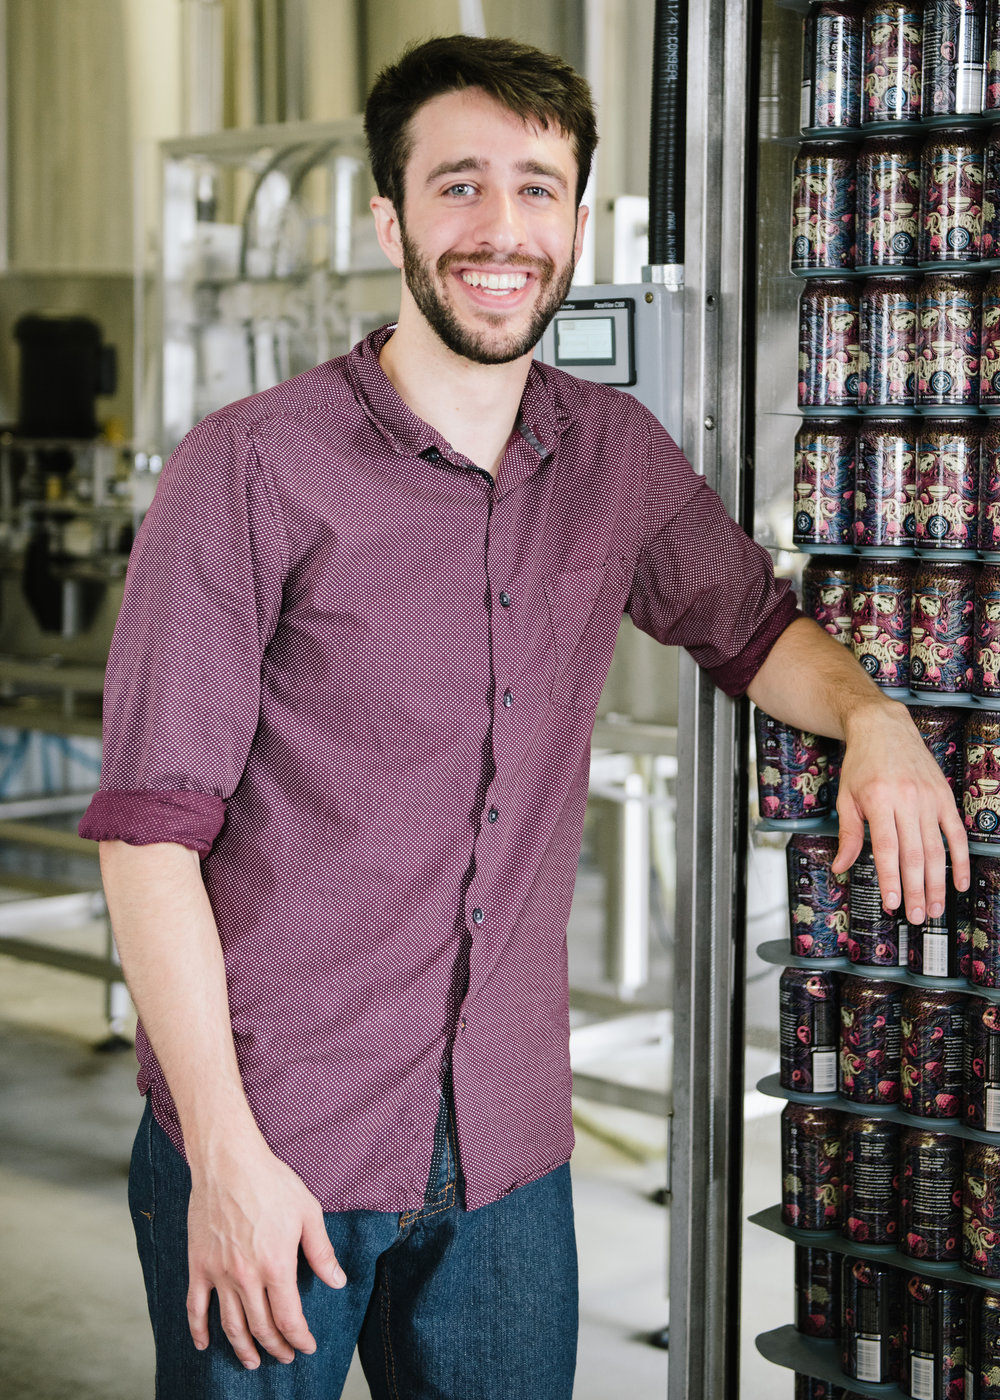 DANA WHITE<br><em>PACKAGING ASSISTANT/CELLARMAN</em>